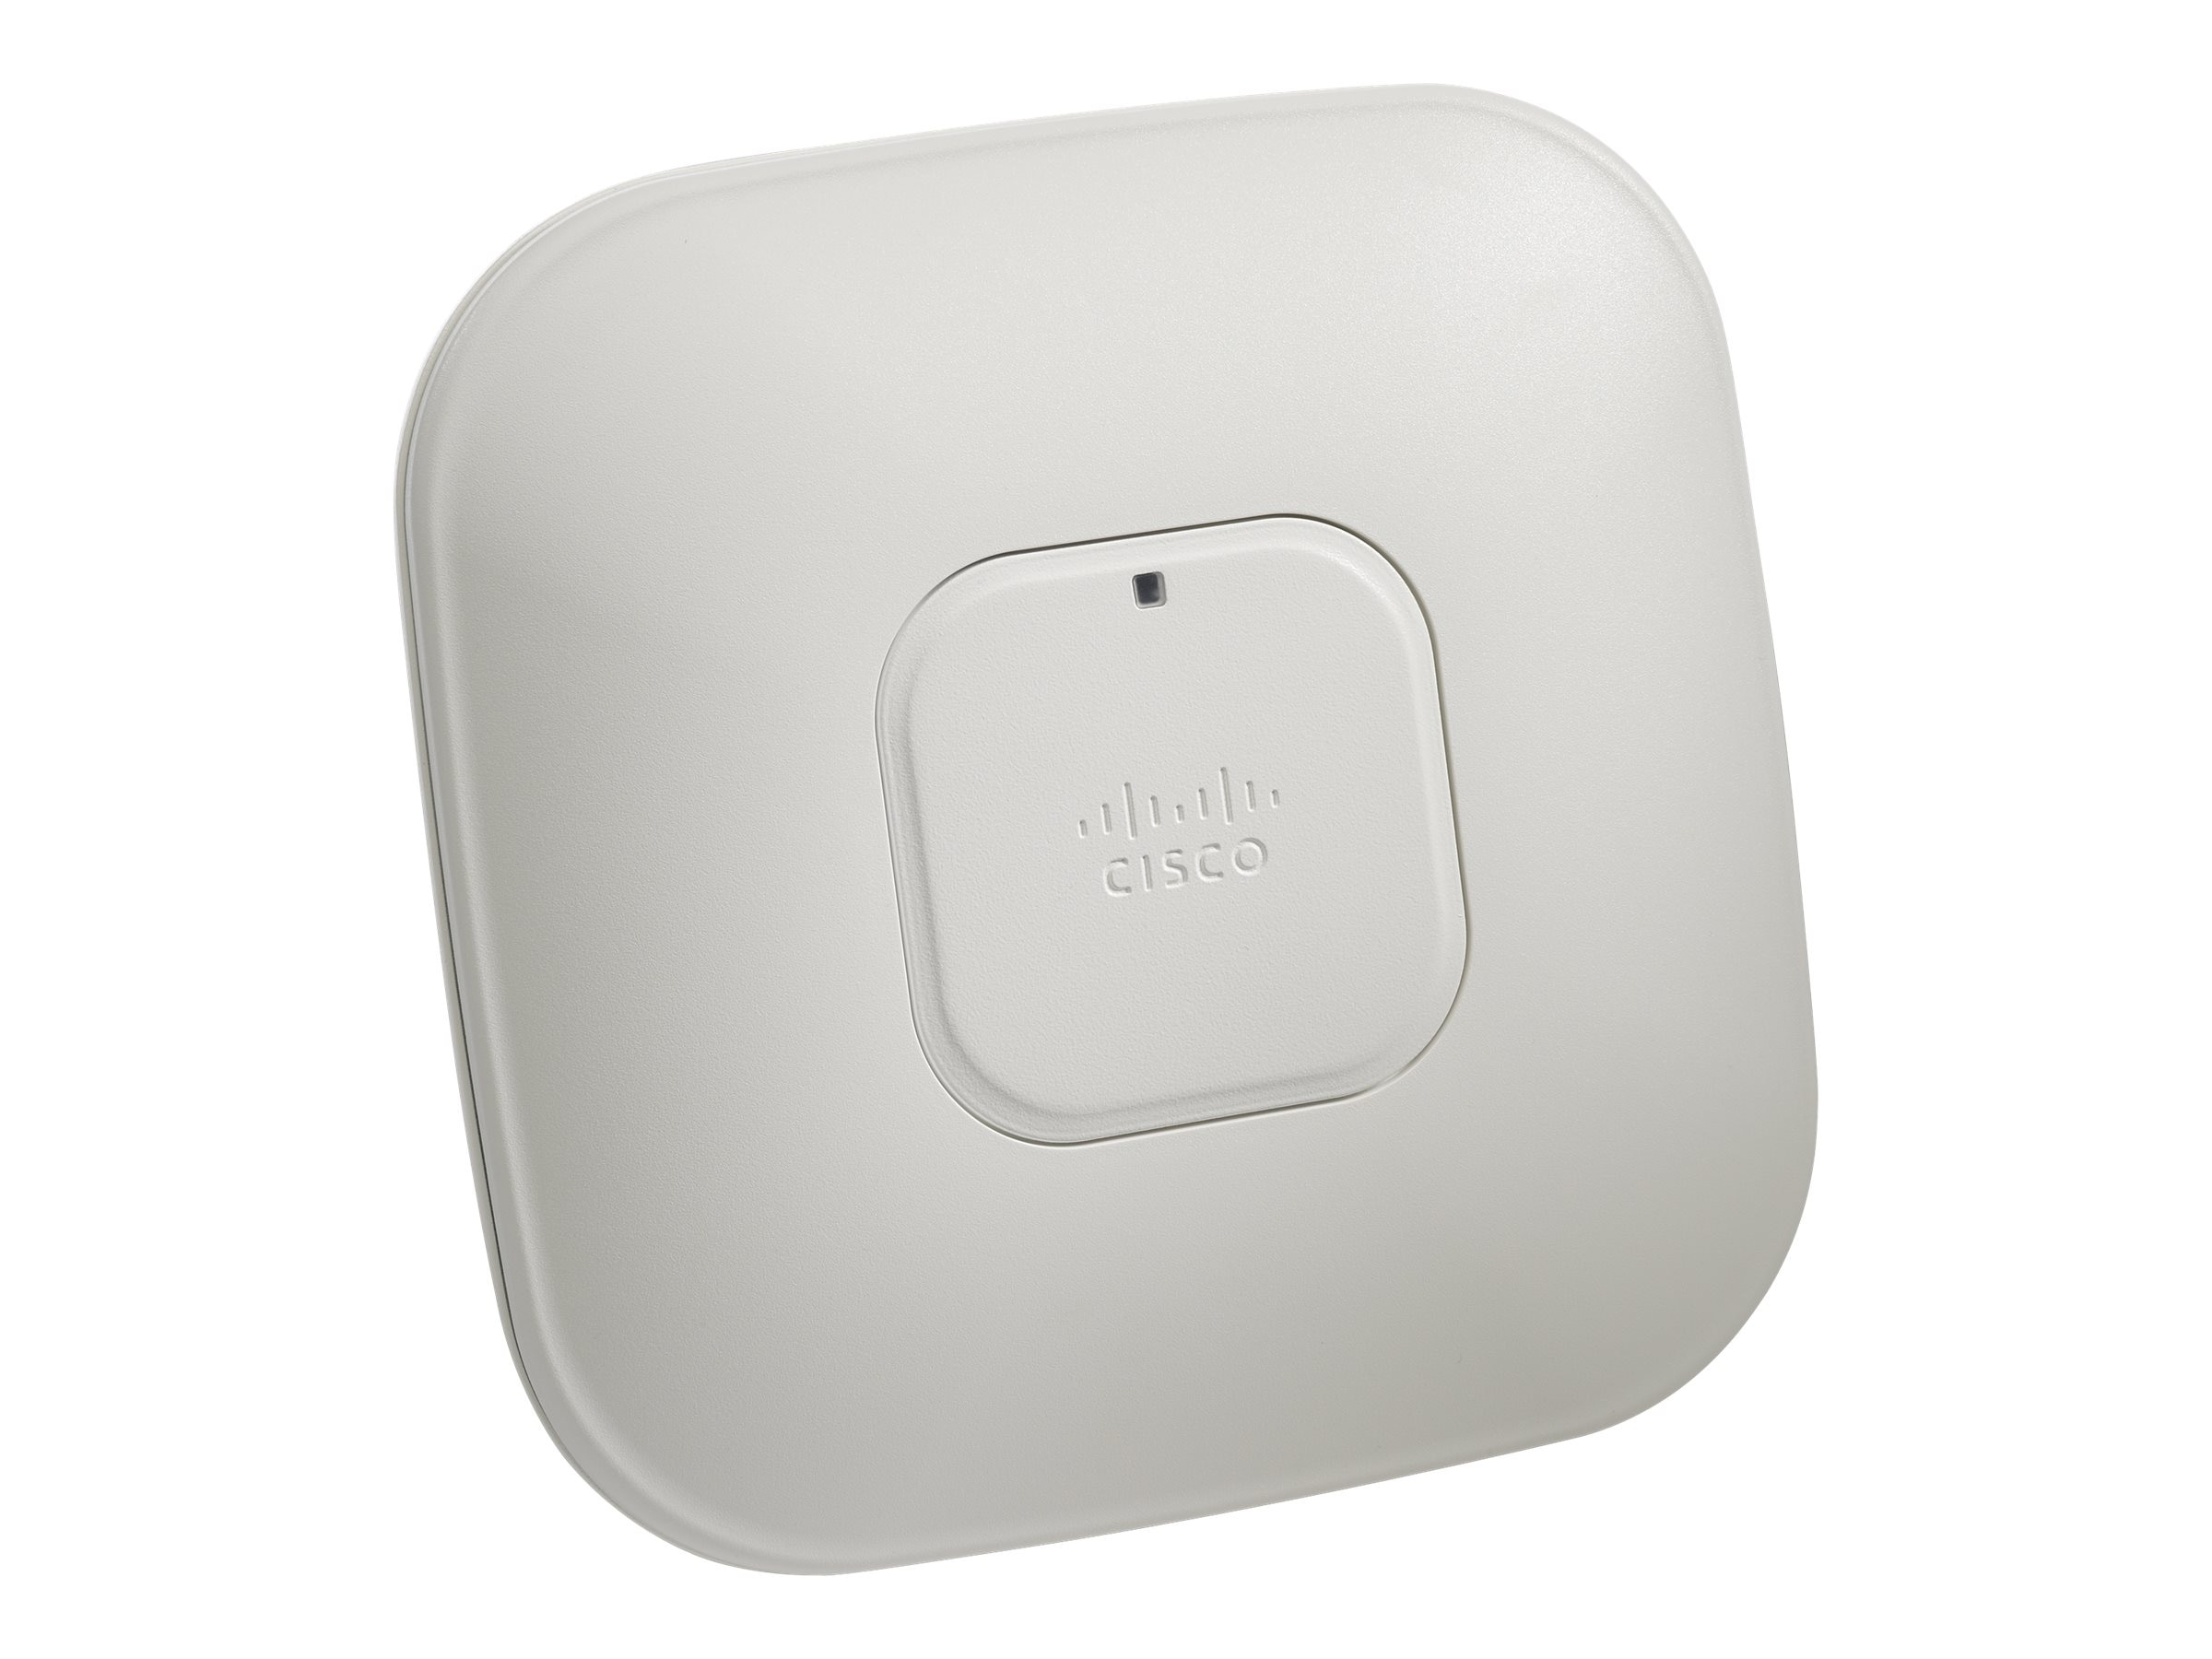 Cisco AIR-CAP3502I-A-K9 Image 2